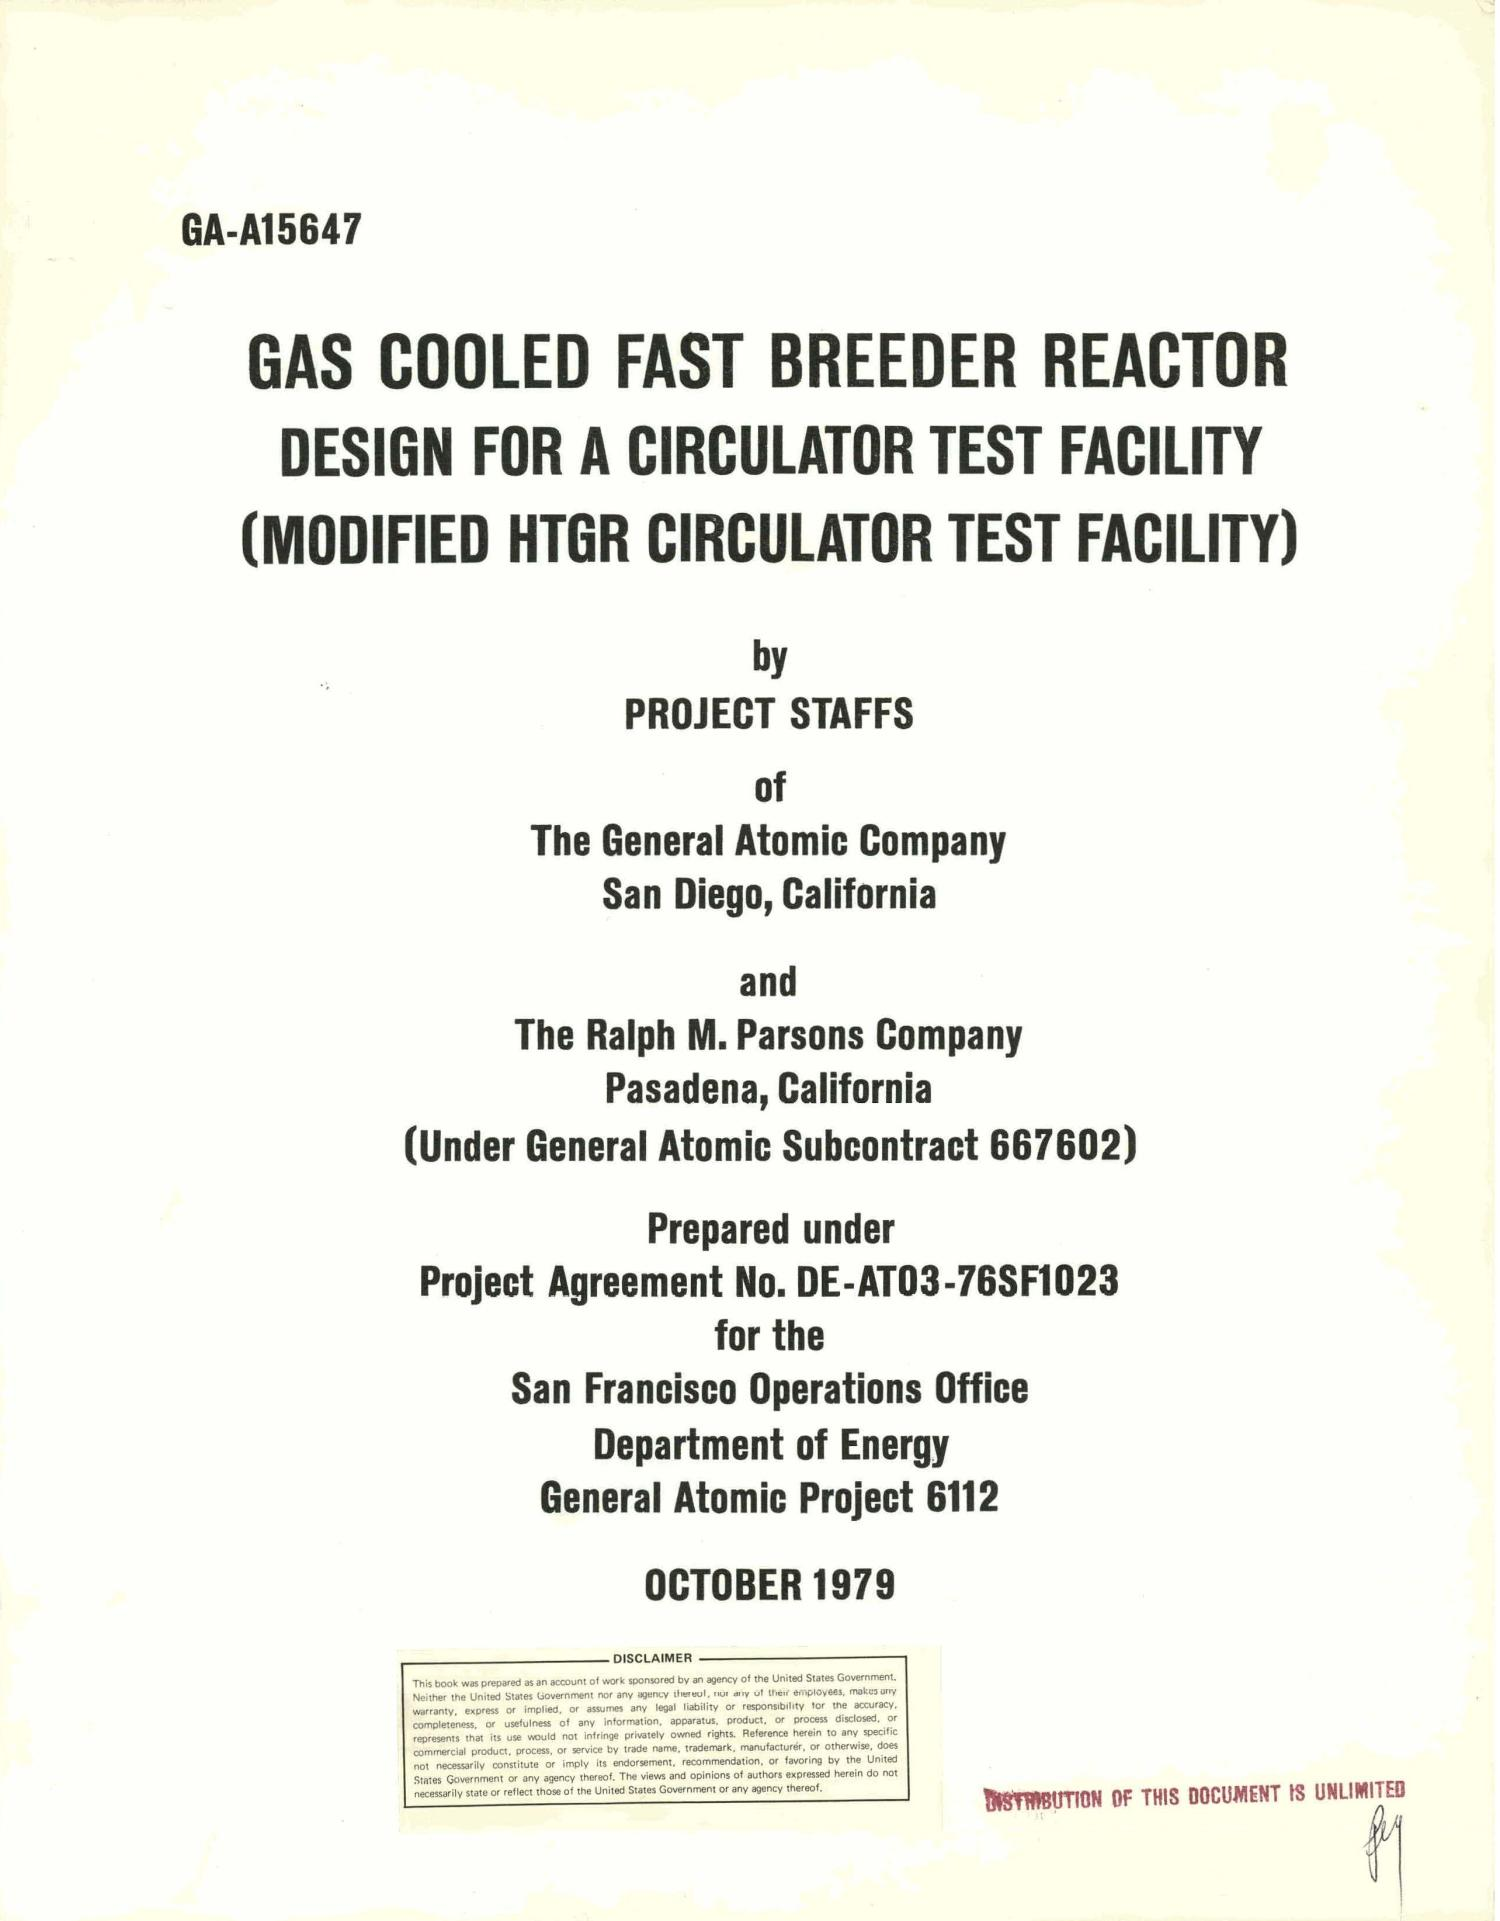 Gas cooled fast breeder reactor design for a circulator test facility (modified HTGR circulator test facility)                                                                                                      [Sequence #]: 5 of 181